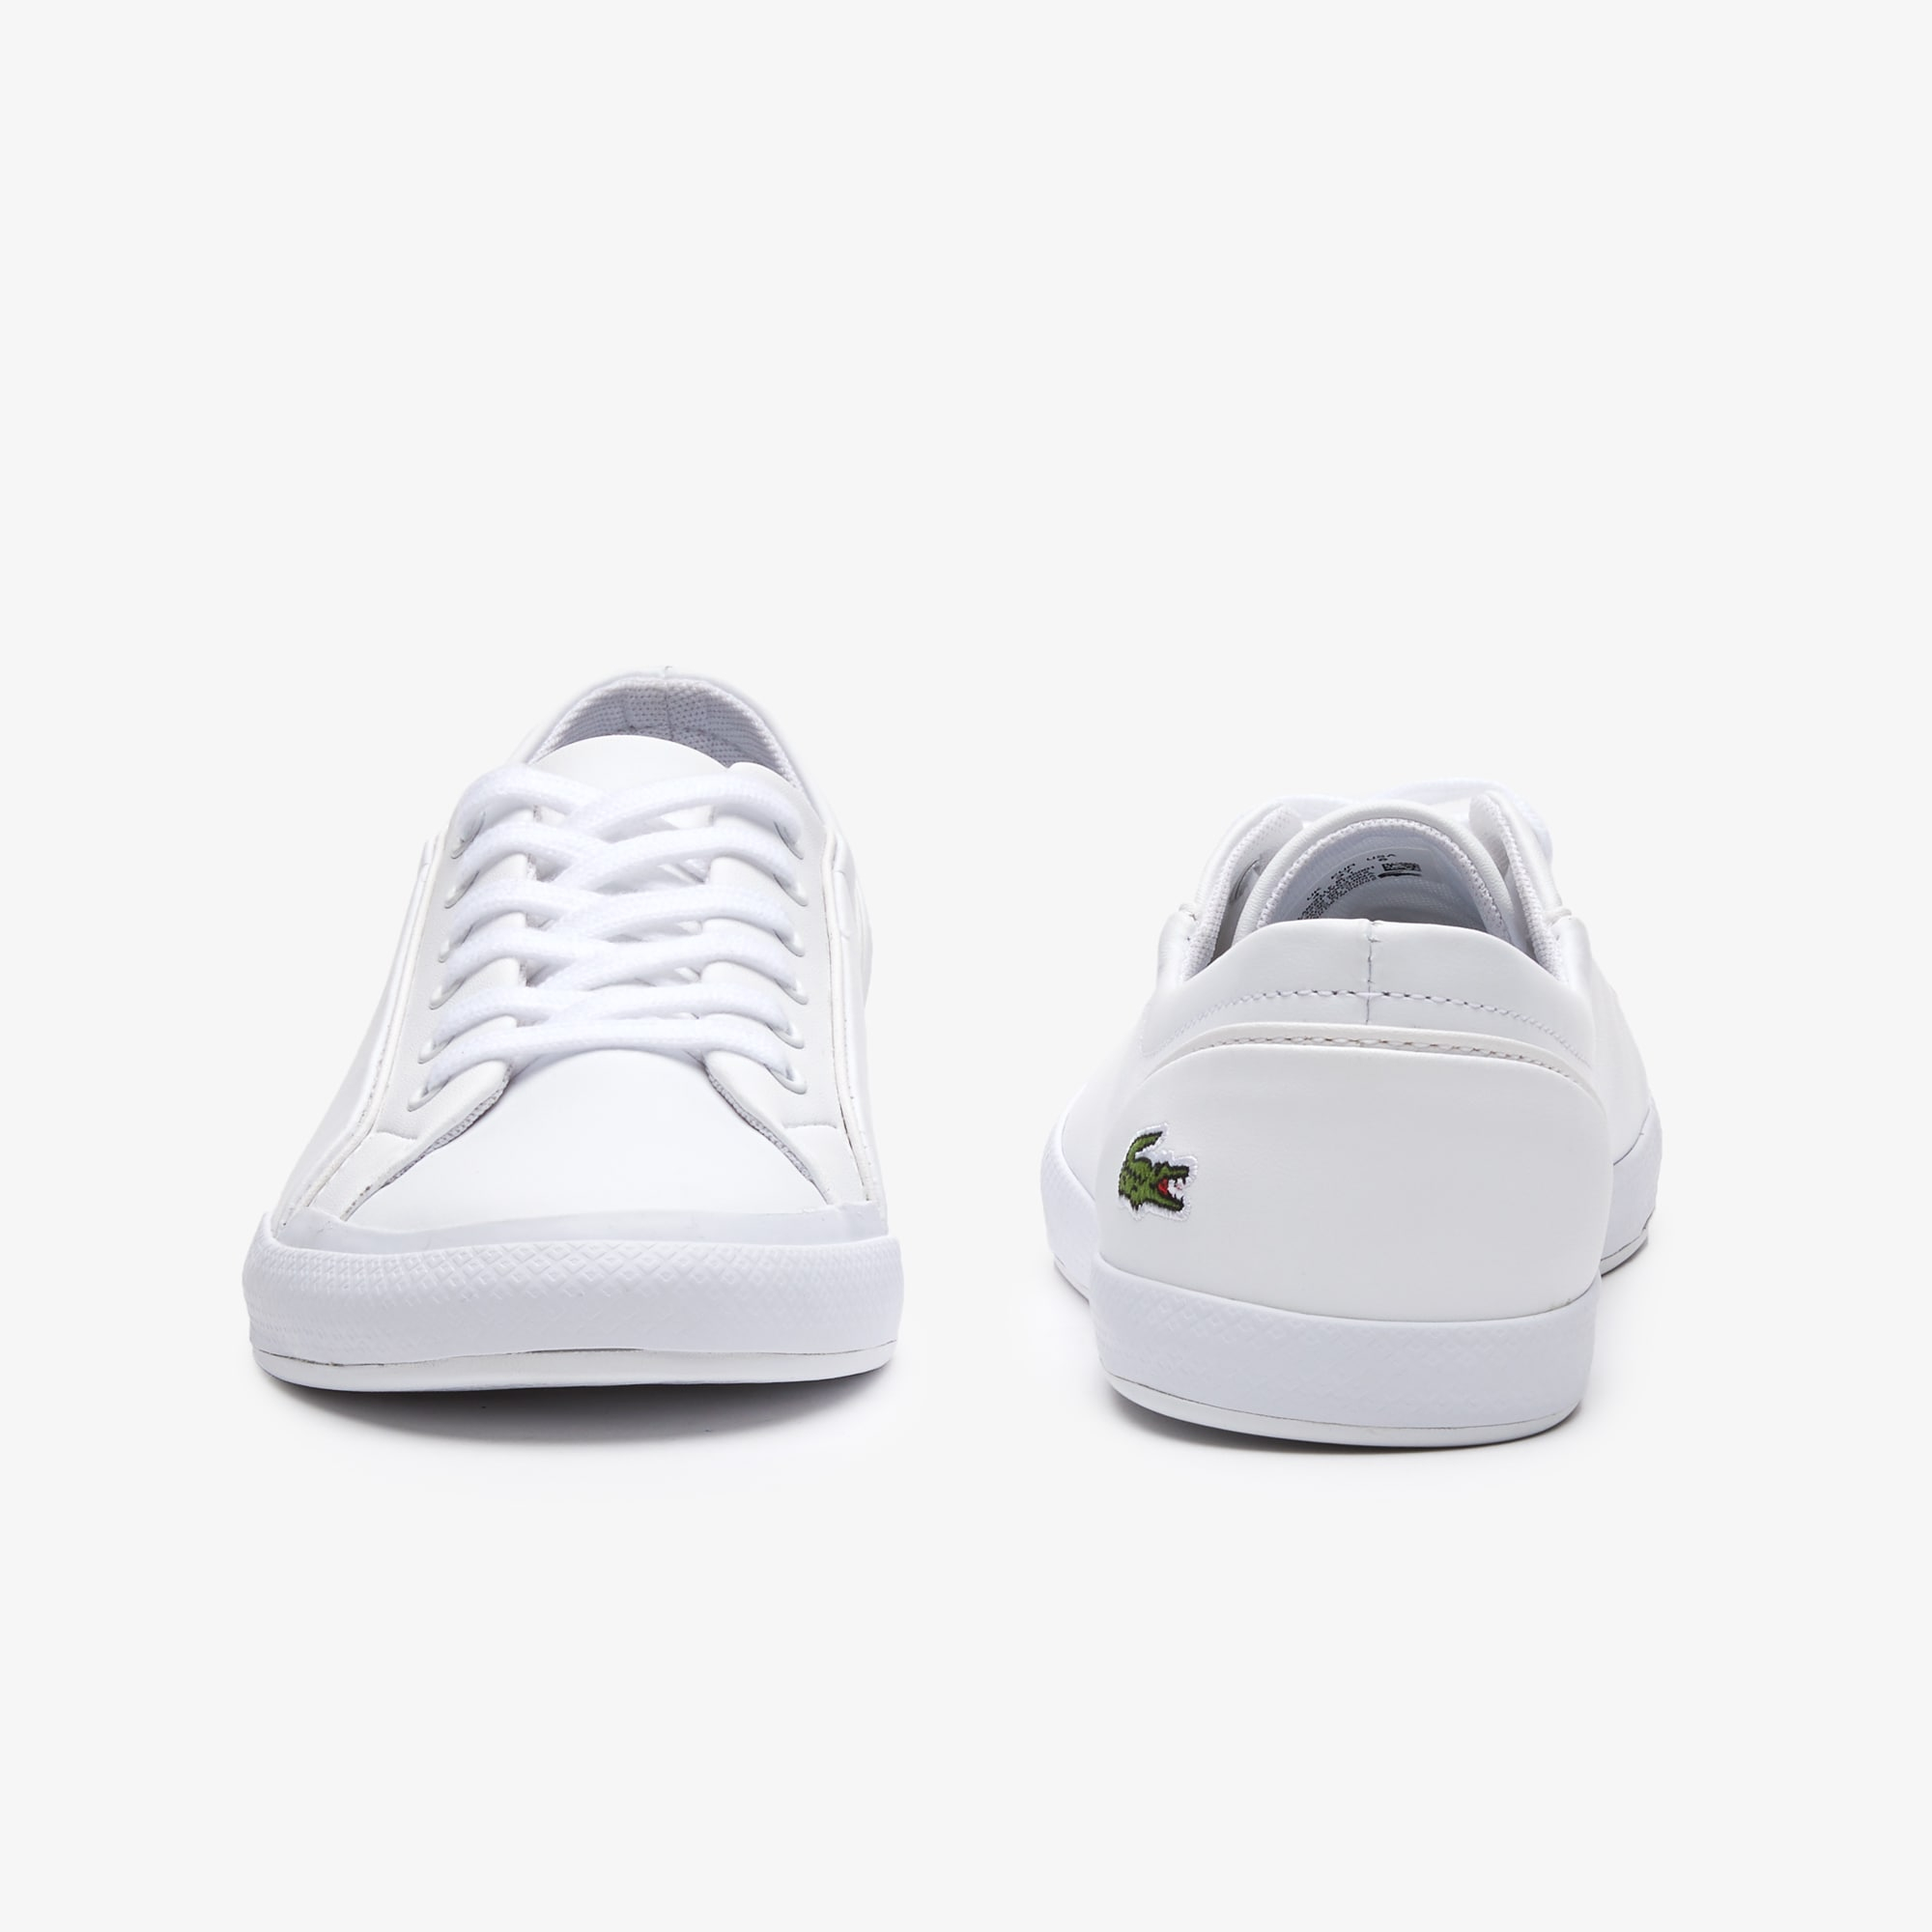 Women's Lancelle BL Leather Sneakers